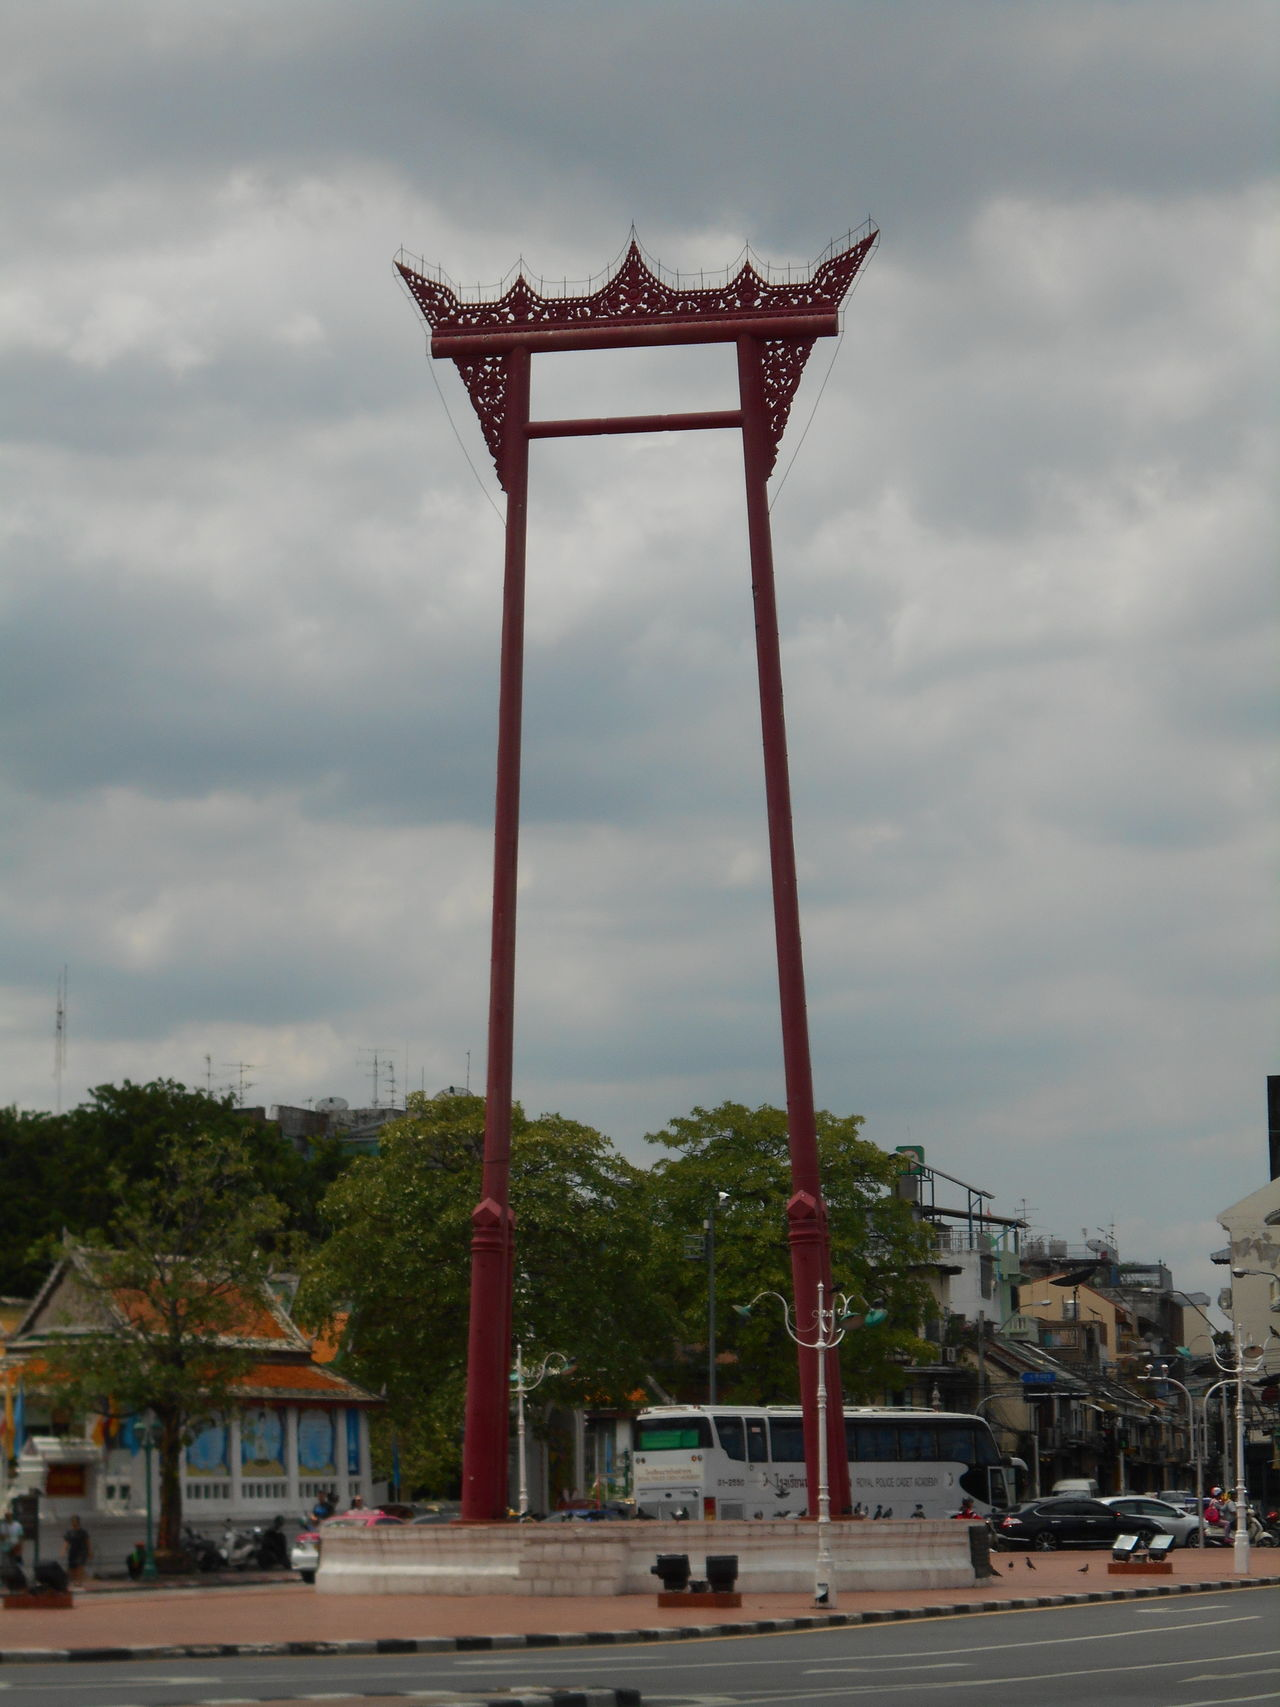 Architecture City Cloud - Sky Day No People Outdoors Sky The Giant Swing Tree